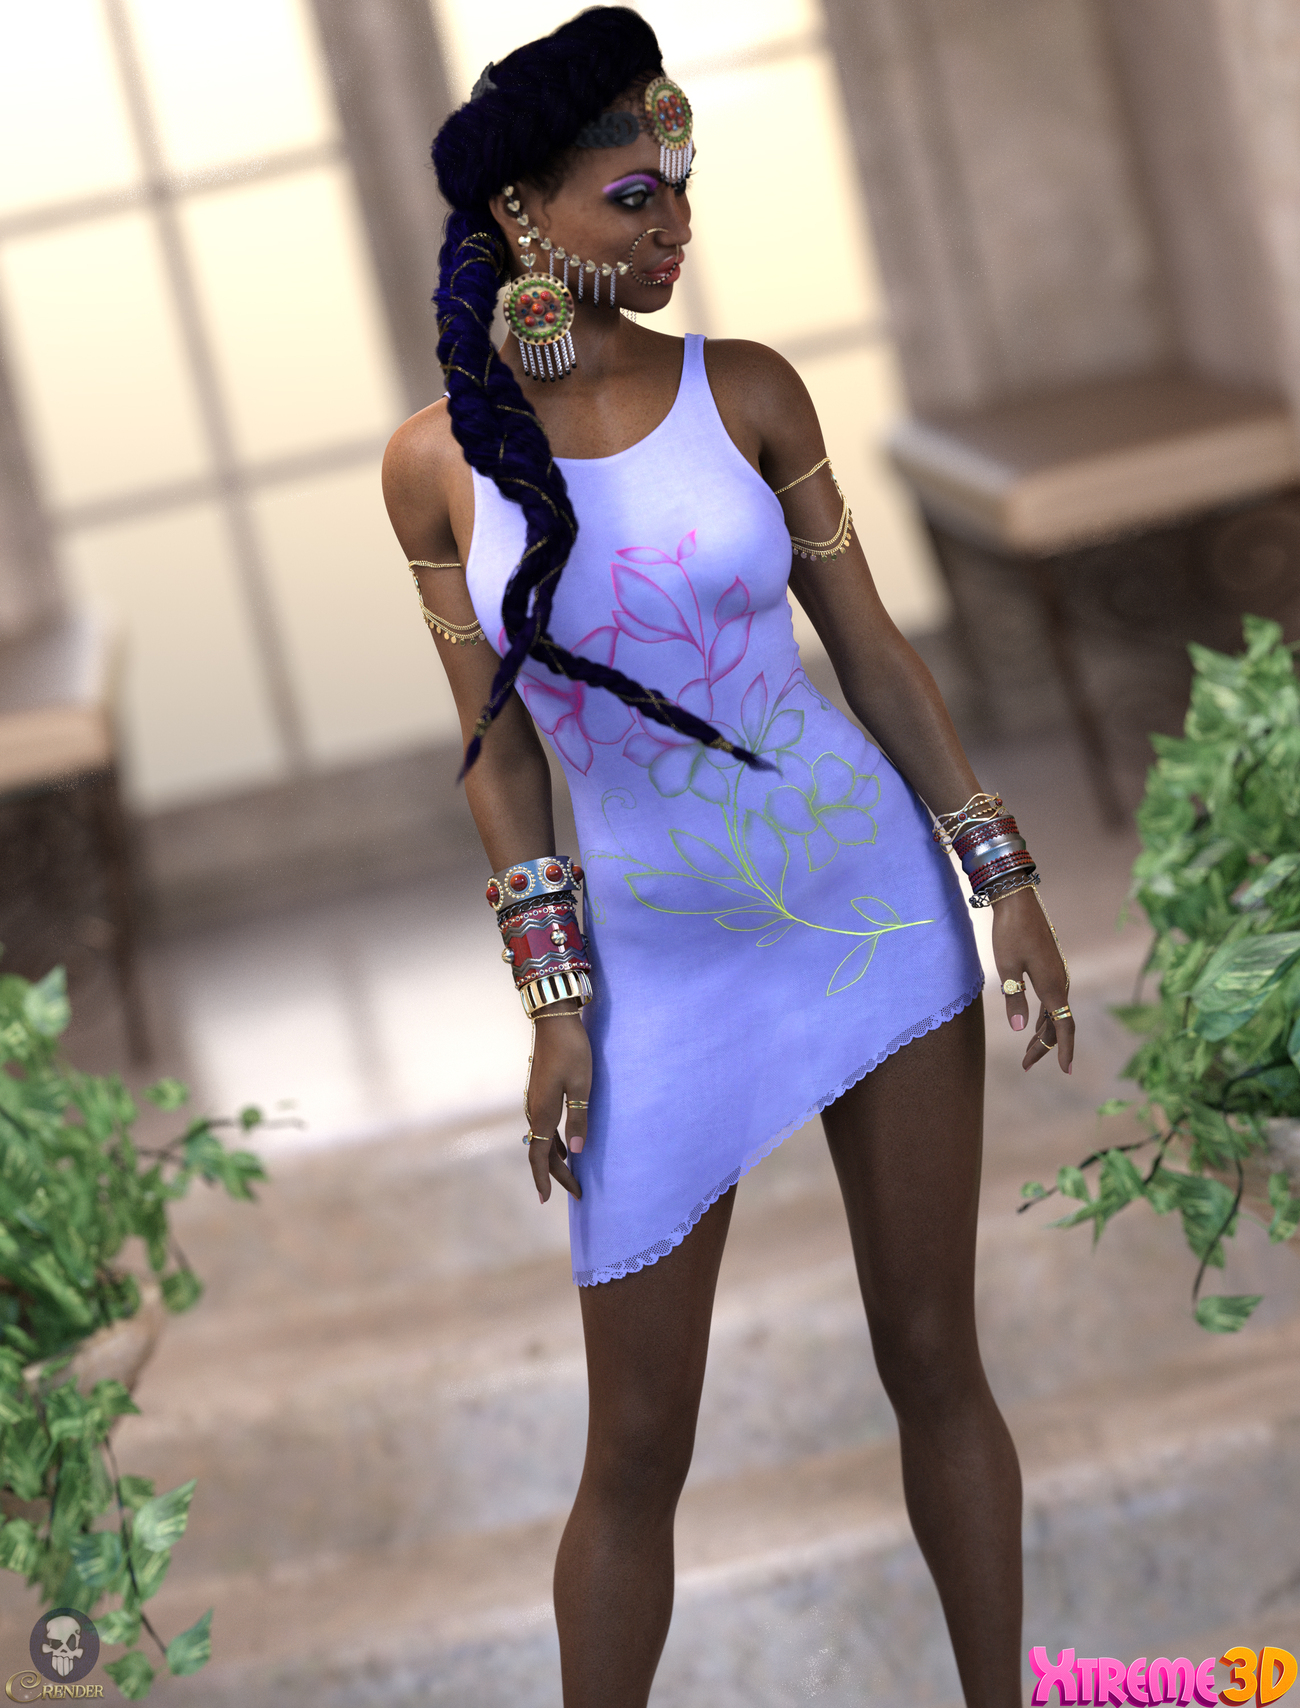 dforce Scandalicious G8F by Nirvy 2 by crender